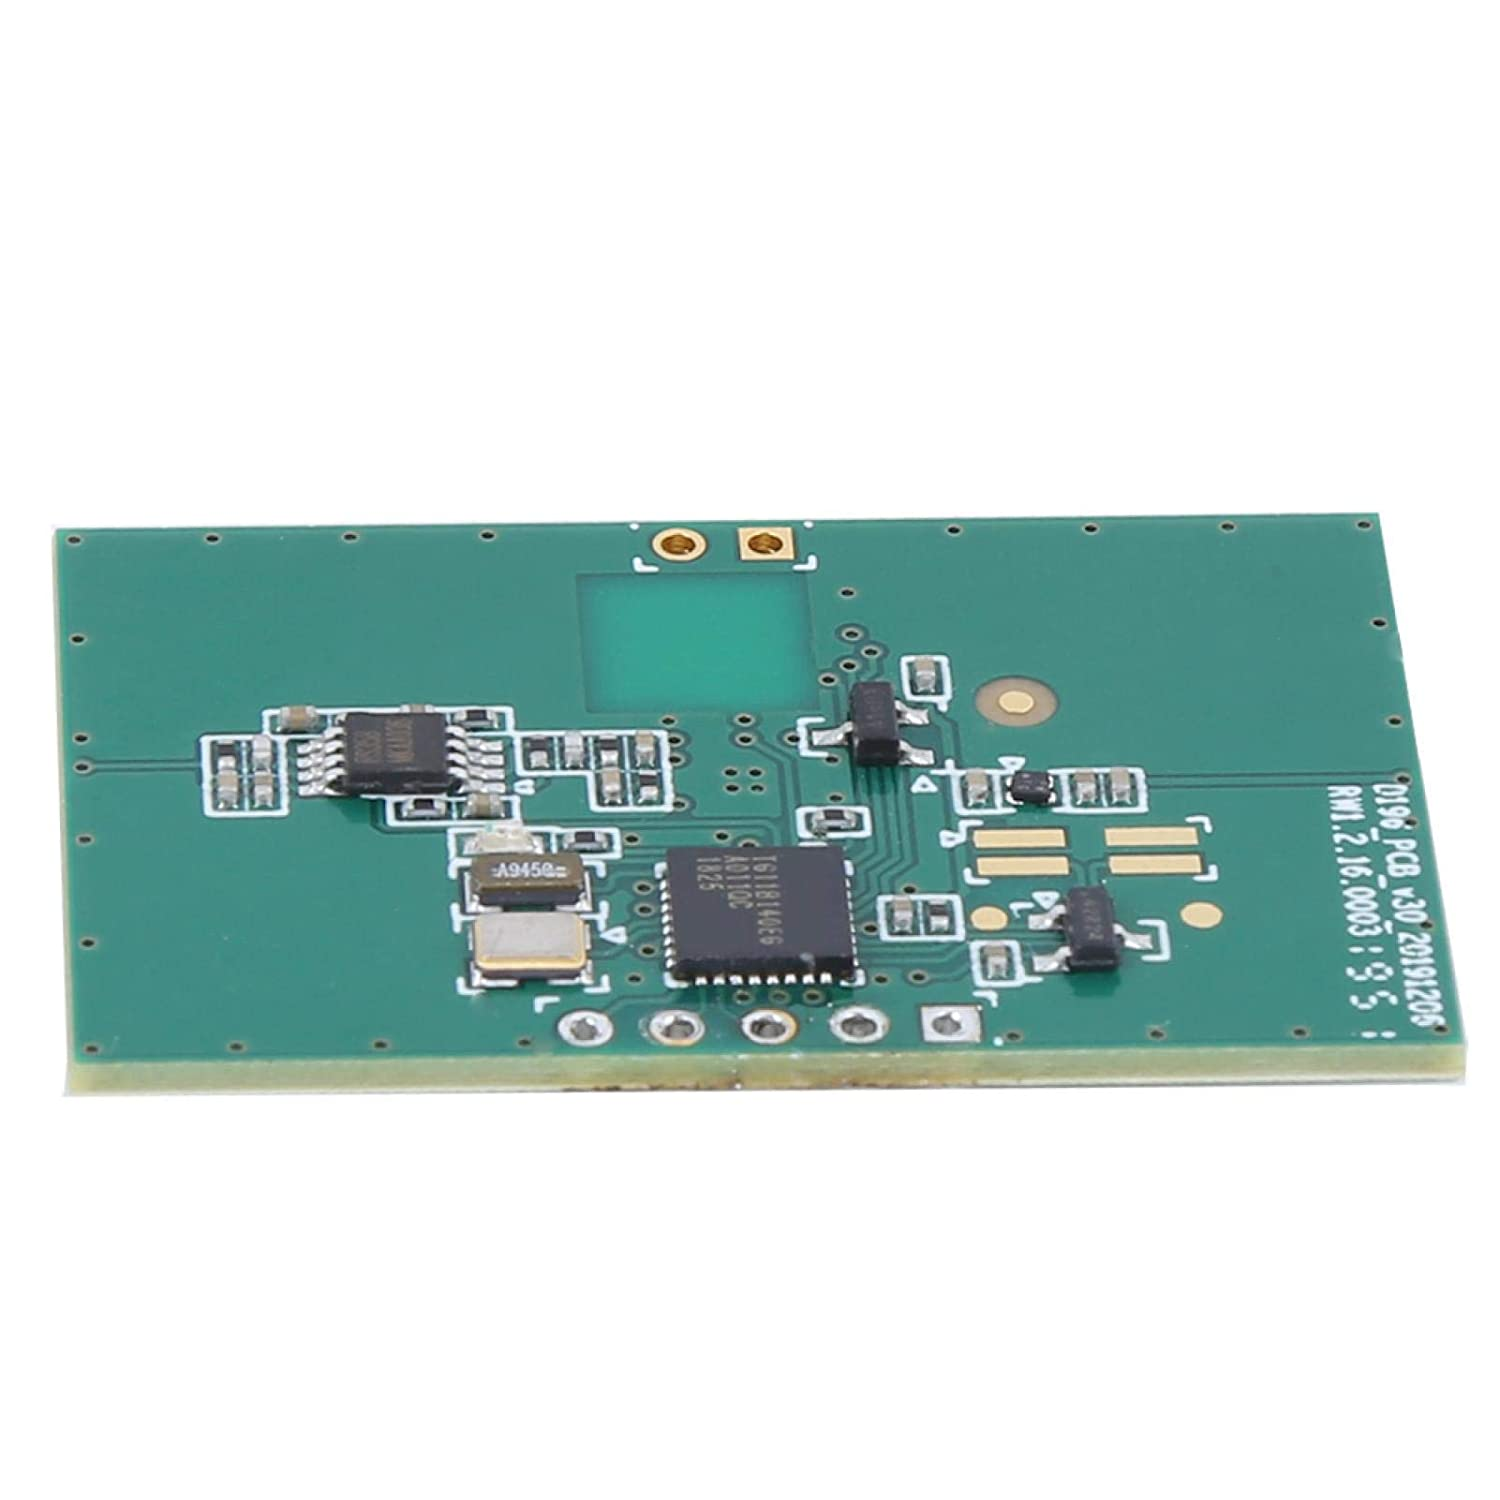 Geomagnetic Low Current Sensor Ranking Direct stock discount TOP12 Radar for Automative